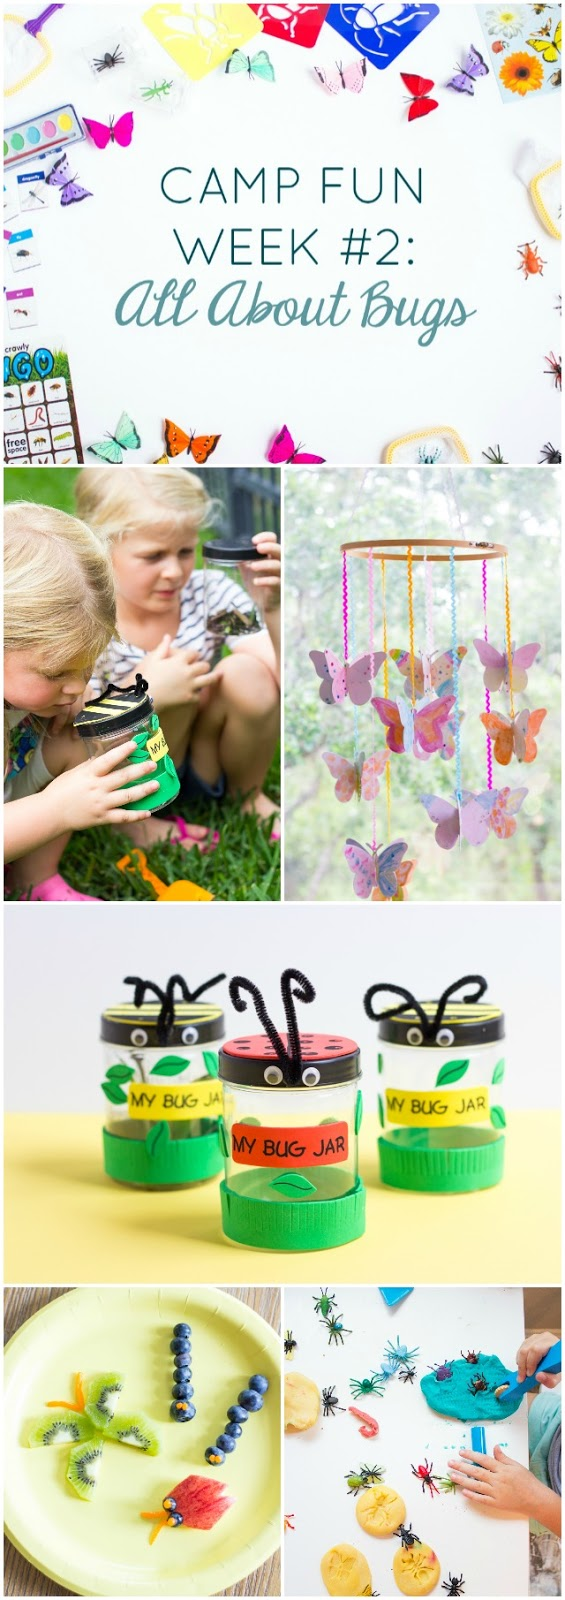 """Camp Fun """"All About Bugs"""" - check out all these creepy crawly bug activities for kids summer camp at home!"""